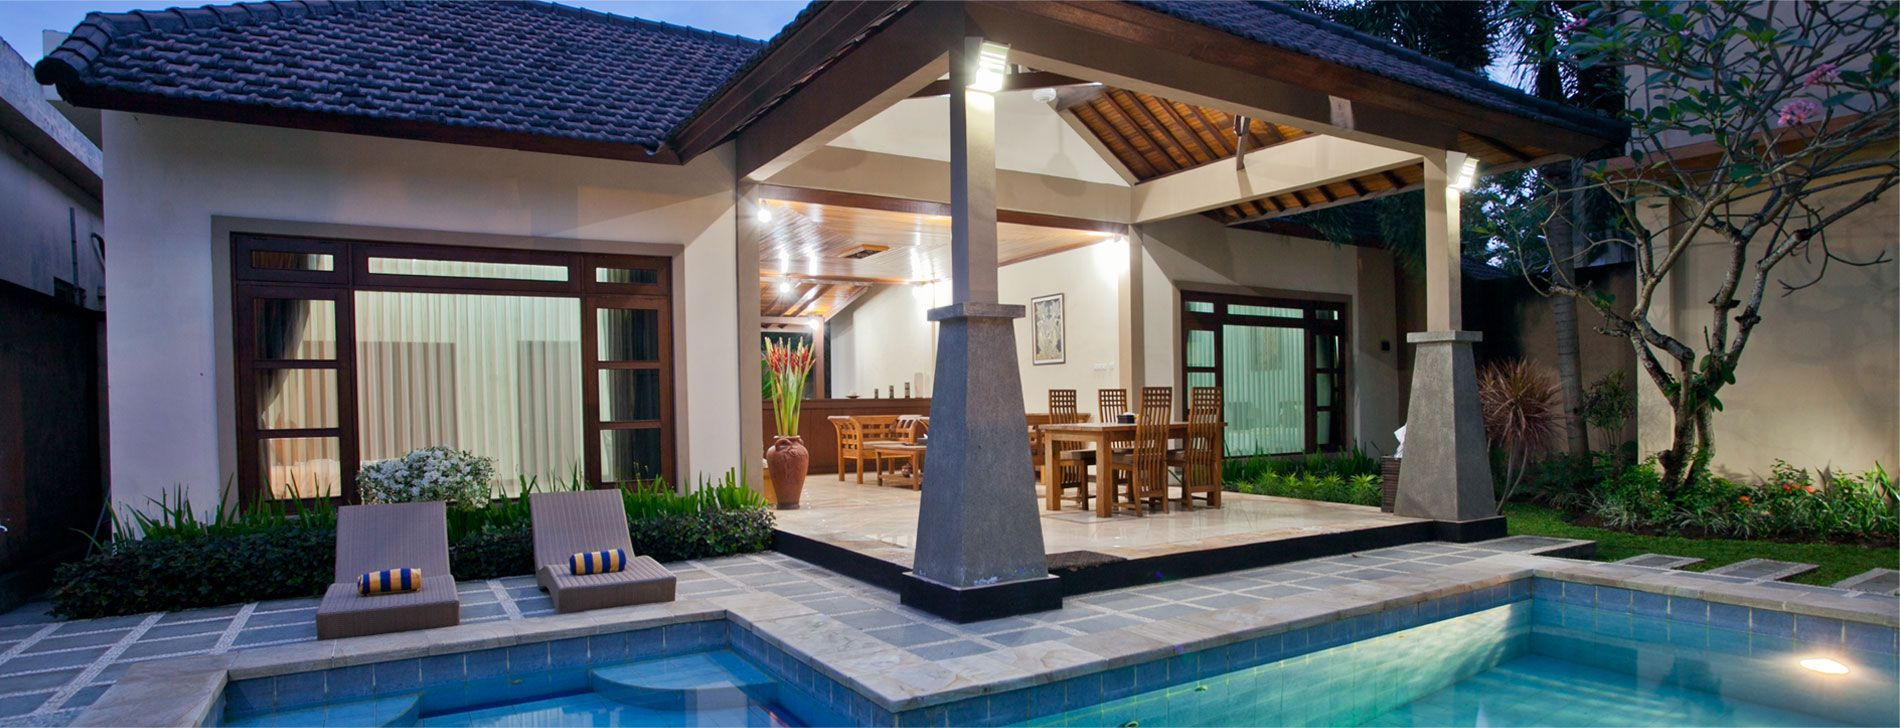 Stay At Gracia Bali Villas A Private Traditional Balinese Cottage Get The Real Balinese Experience Www Booking Bali Villas Com Modellhaus Schwimmbader